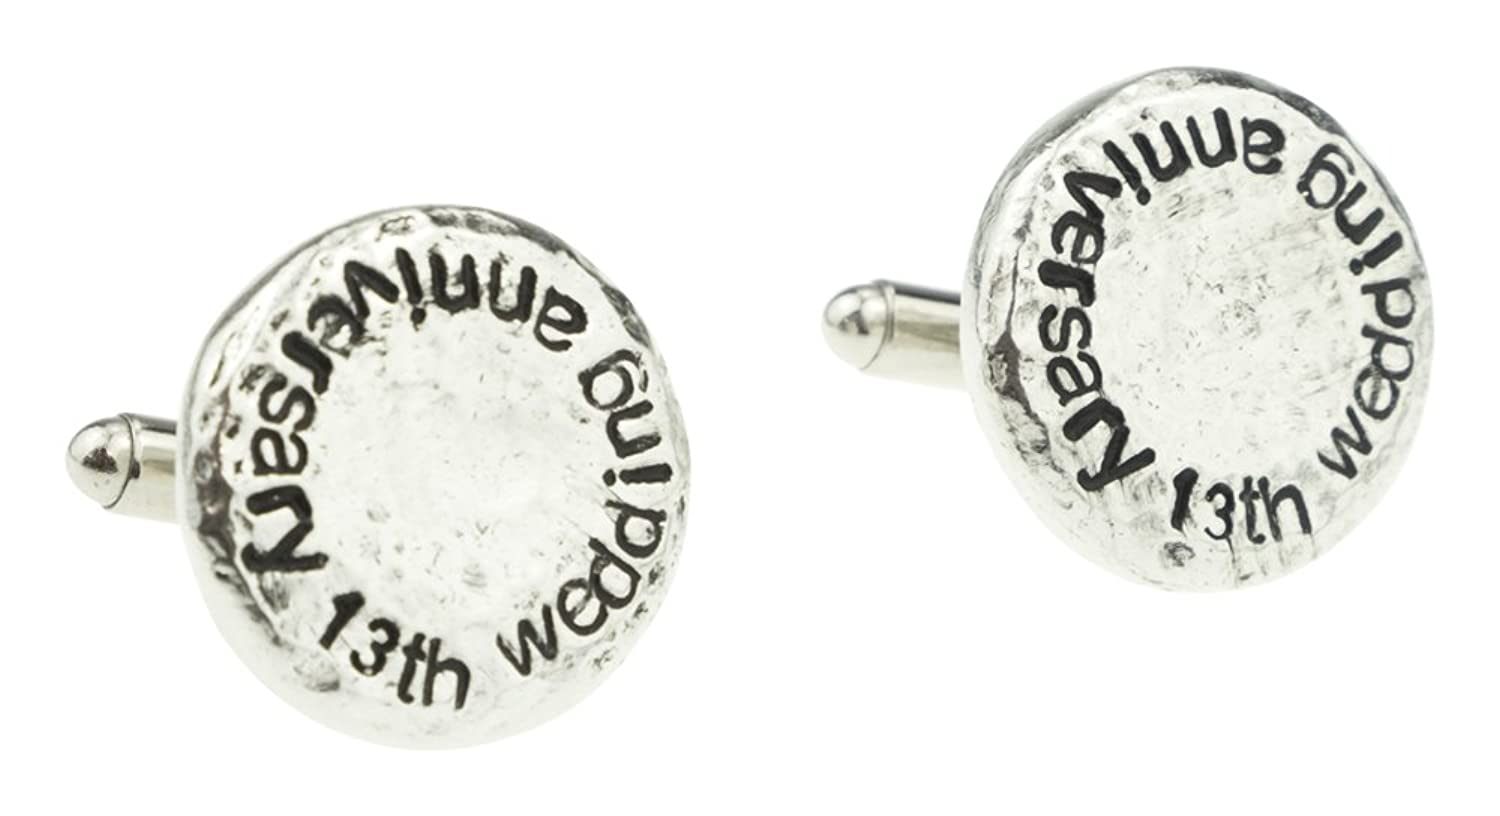 13th Wedding Anniversary Hammered Cuff-links for Husband, 13th Anniversary Gift Idea & Keepsake